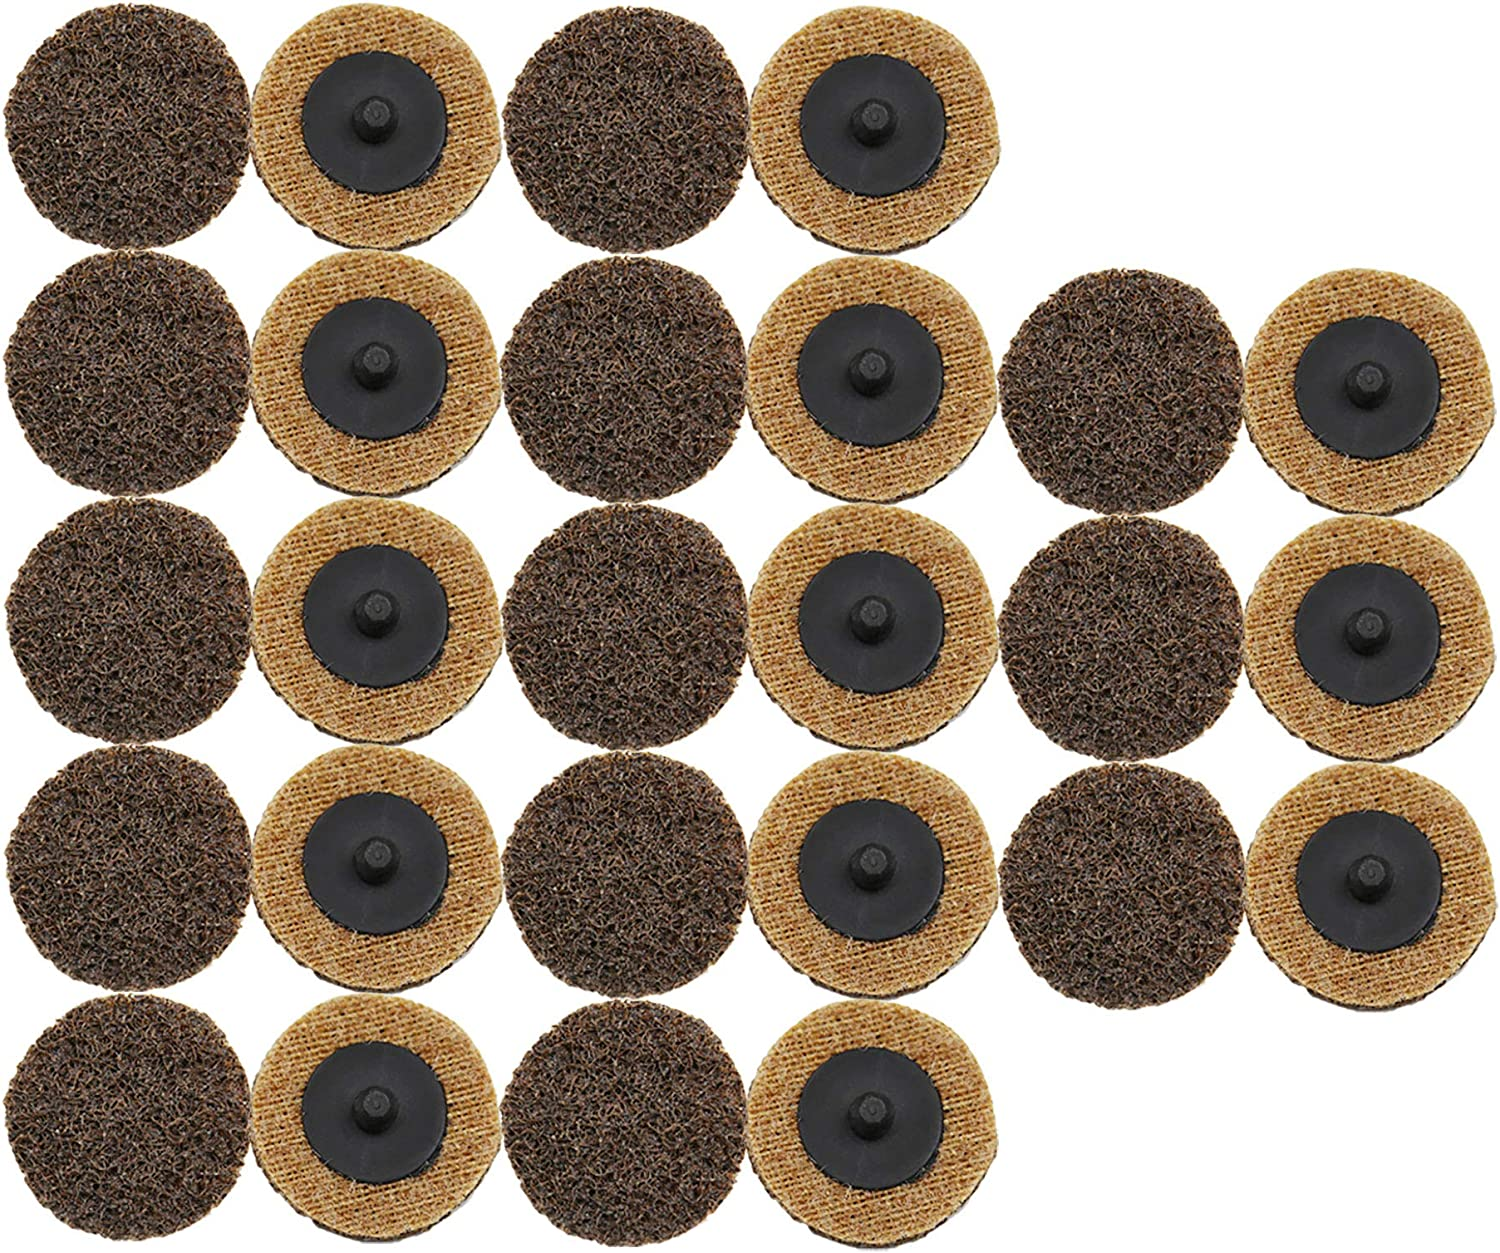 COSPOF 2 Inch Roloc Sanding Disc,Surface Conditioning Disc,Easy for Quick Change,Features Better Surface Quality and Heat Dissipation -26 Pack (Brown-Coarse) 81BC9d2BdNVL